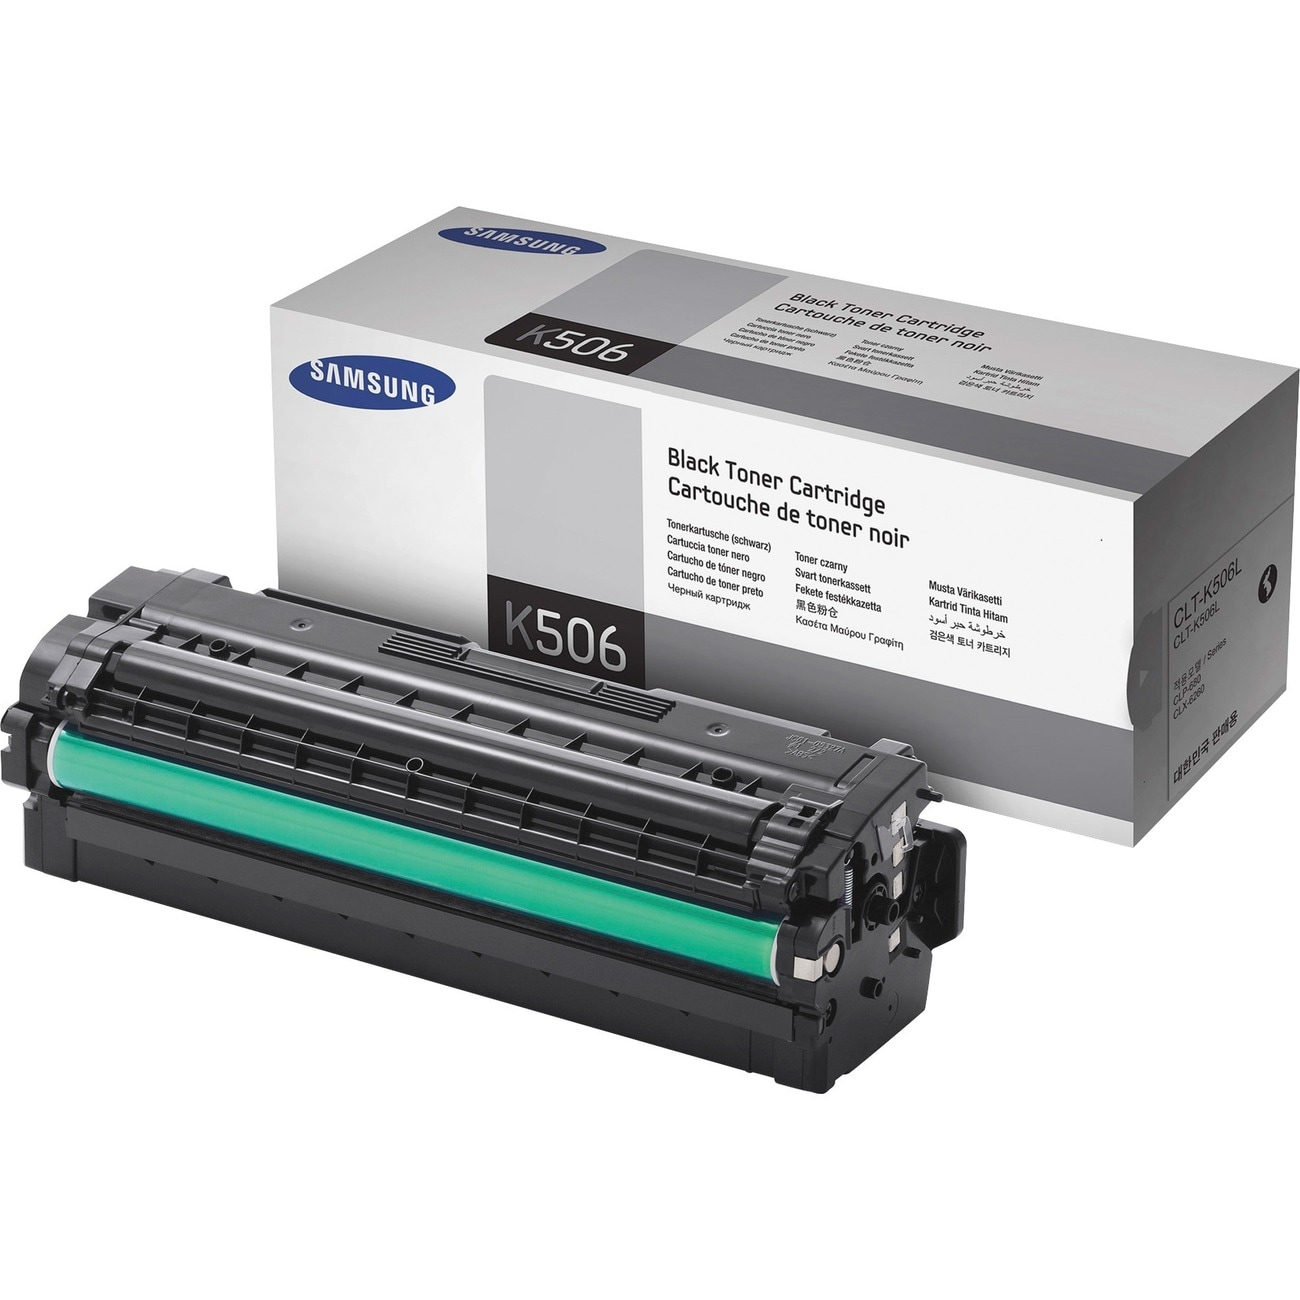 Samsung CLT-K506L Toner Cartridge - Black - Thumbnail 0